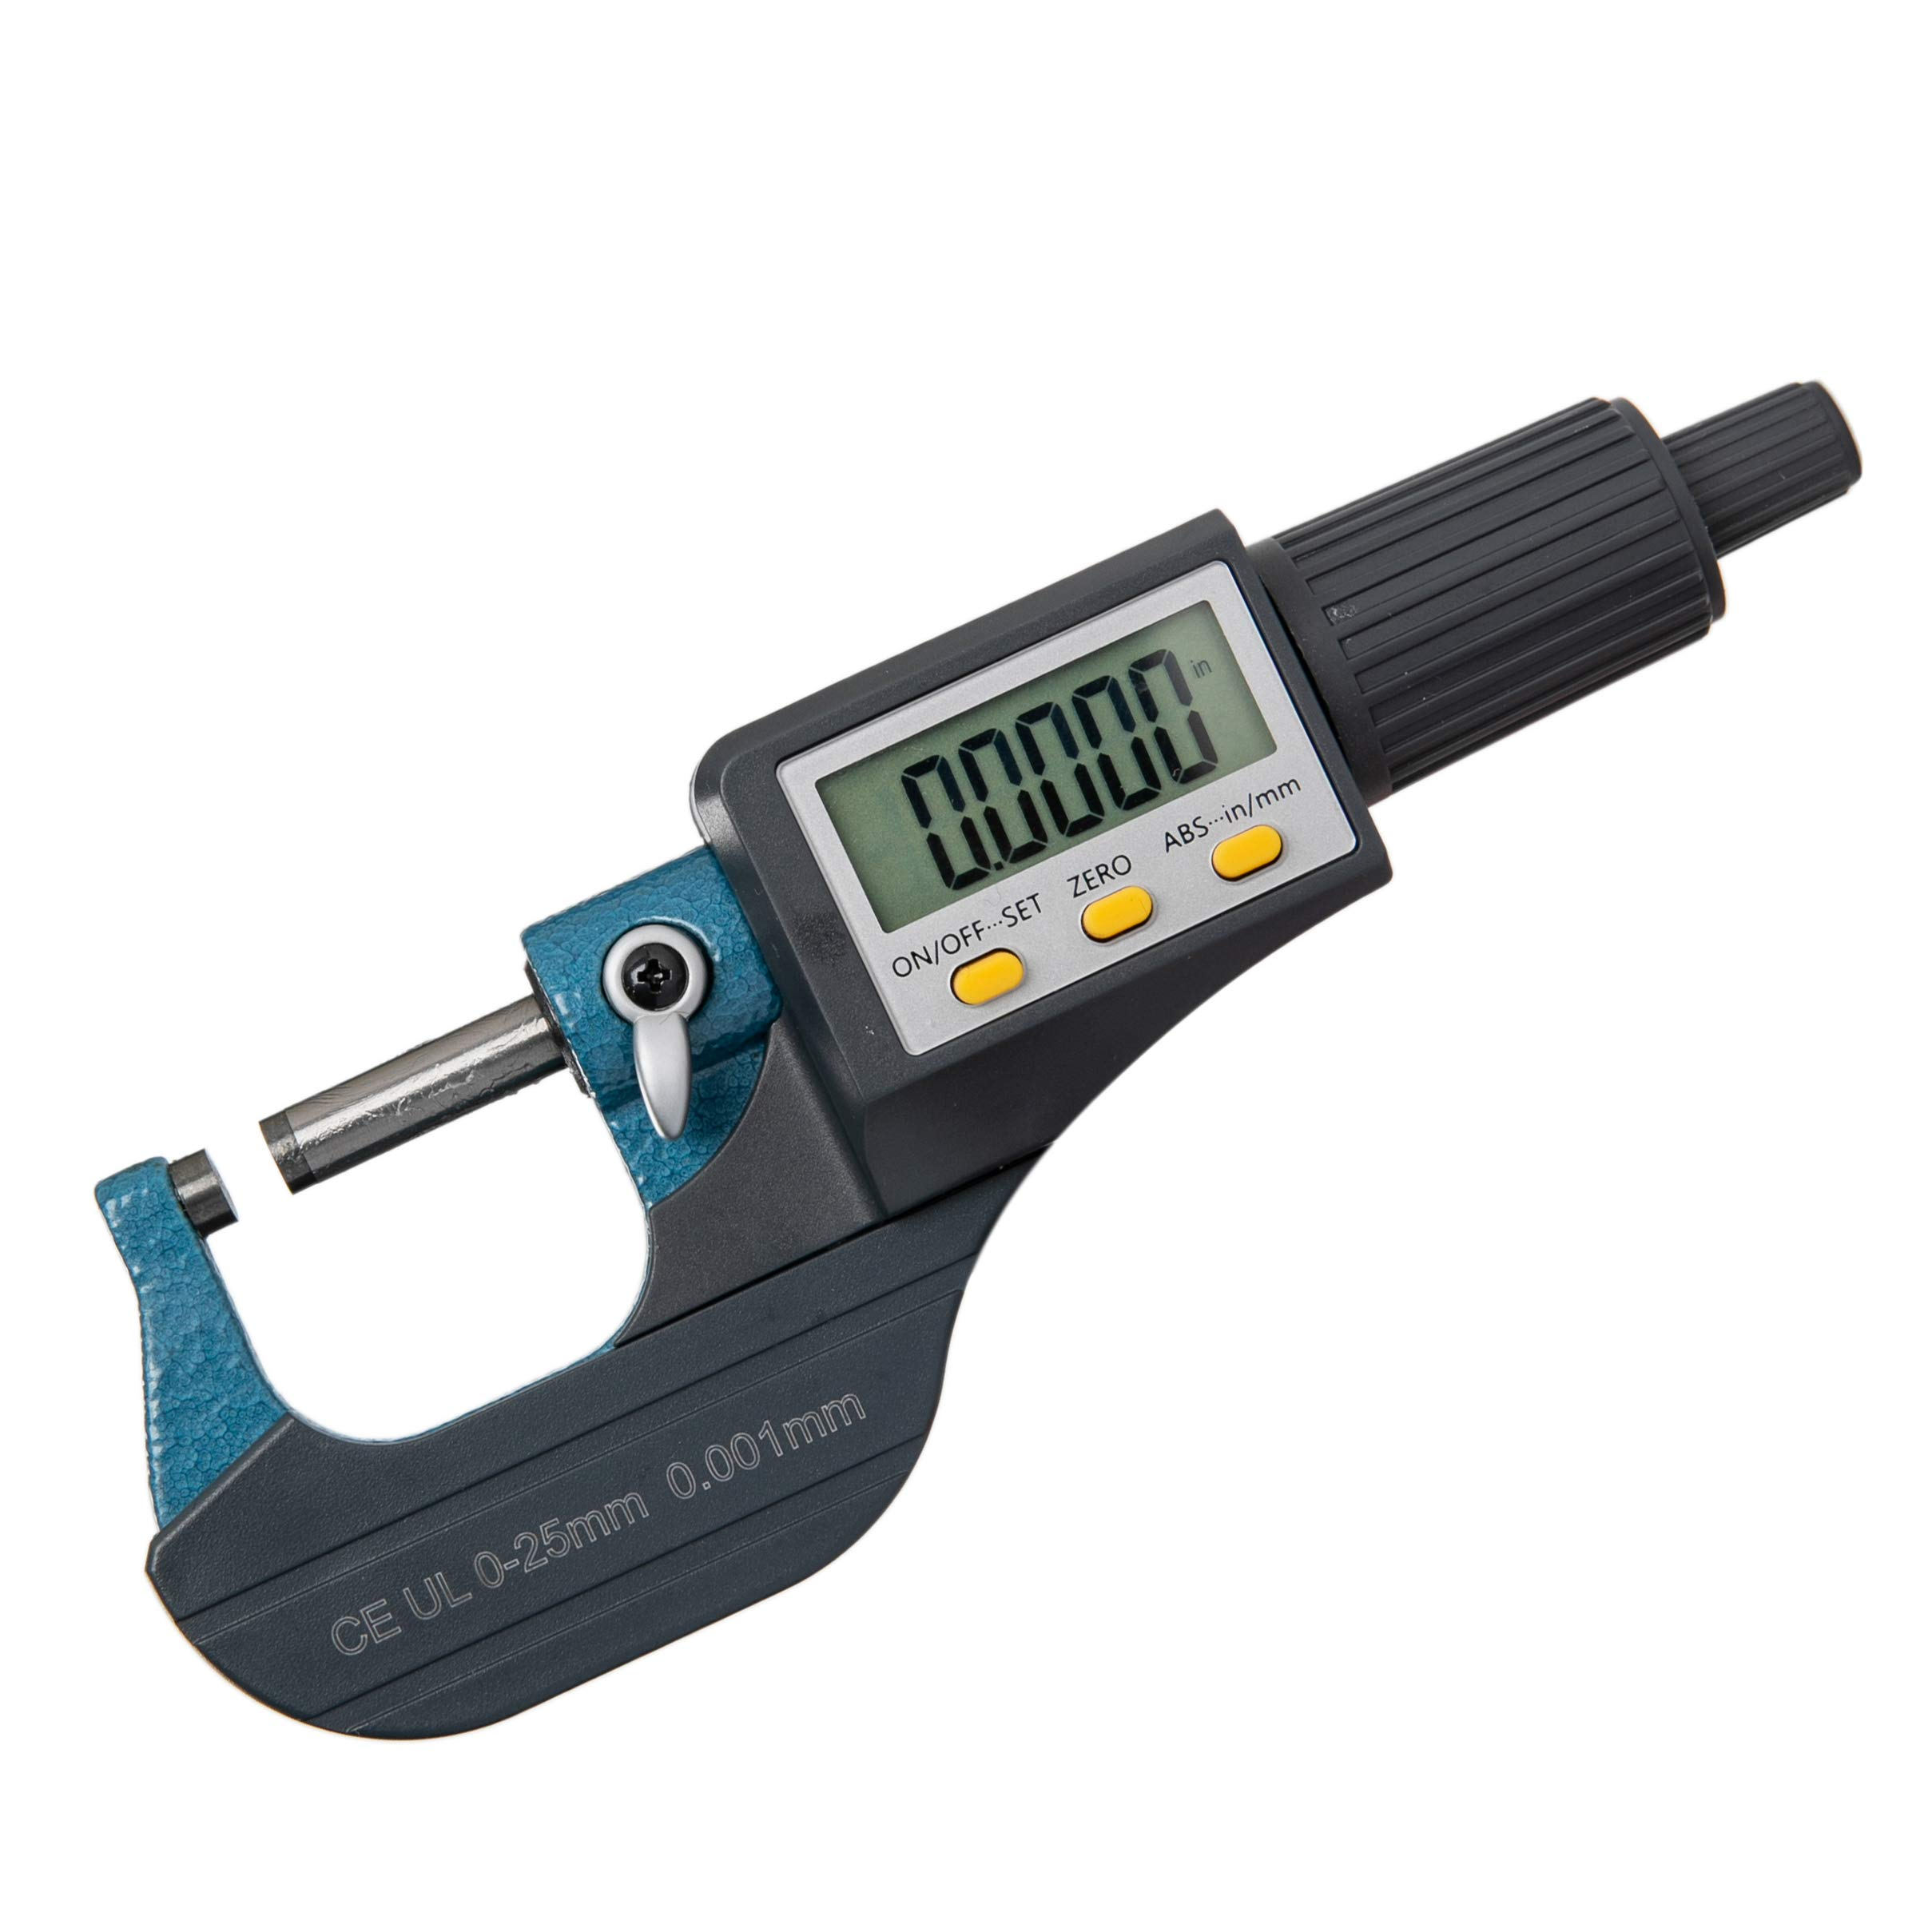 Beslands Digital Electronic Display Micrometer 0-1'' / 0-25mm Gauge 0.00004'' / 0.001mm Thickness Measuring Tools Inch/Metric Caliper, Protective Case (with Extra Battery)